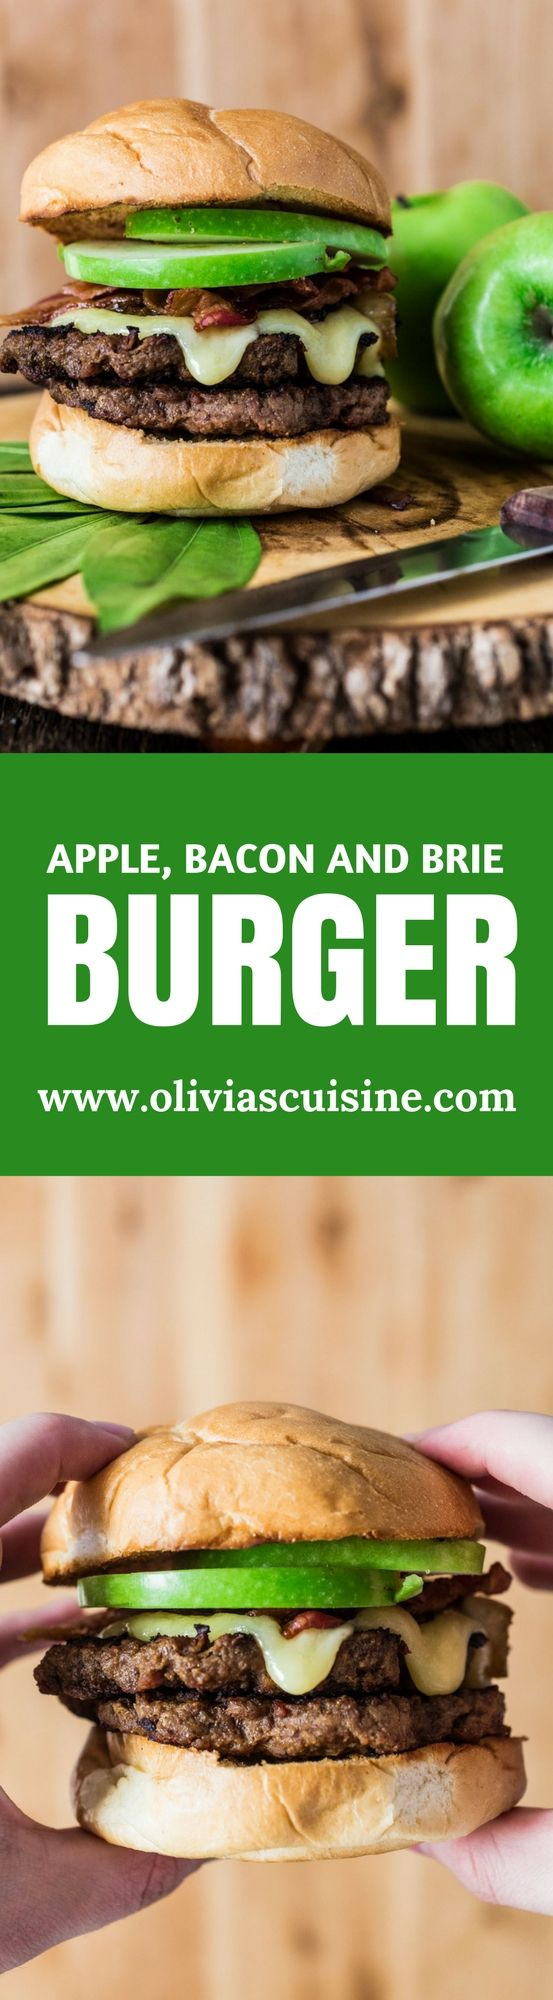 Apple, Bacon and Brie Burger | www.oliviascuisine.com | The epitome of fall, this delicious Apple, Bacon and Brie Burger will have you licking your fingers! (Sponsored by Tyson Foods, Inc.) AD